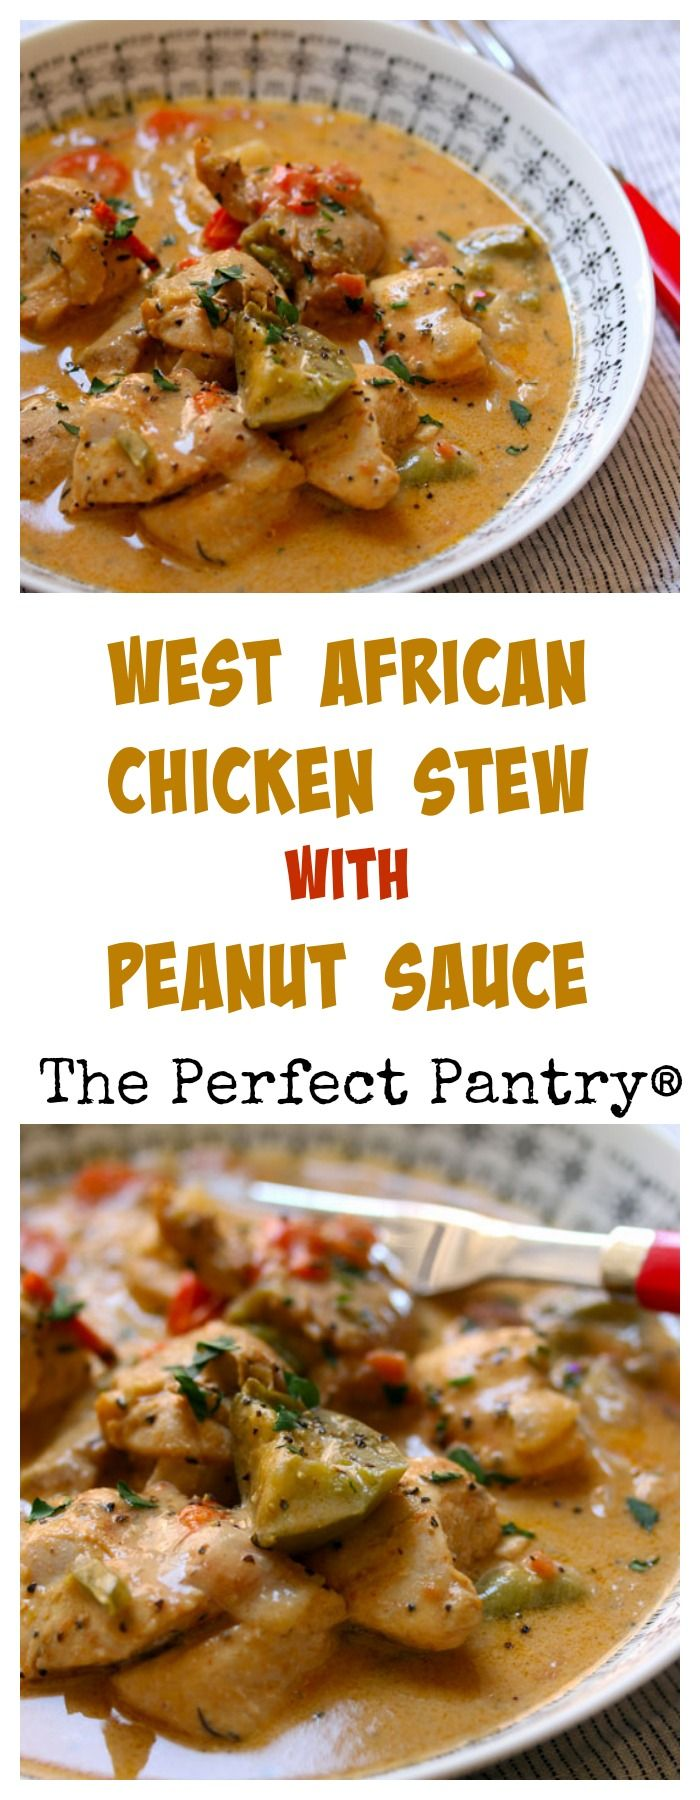 Blue apron west african spice blend